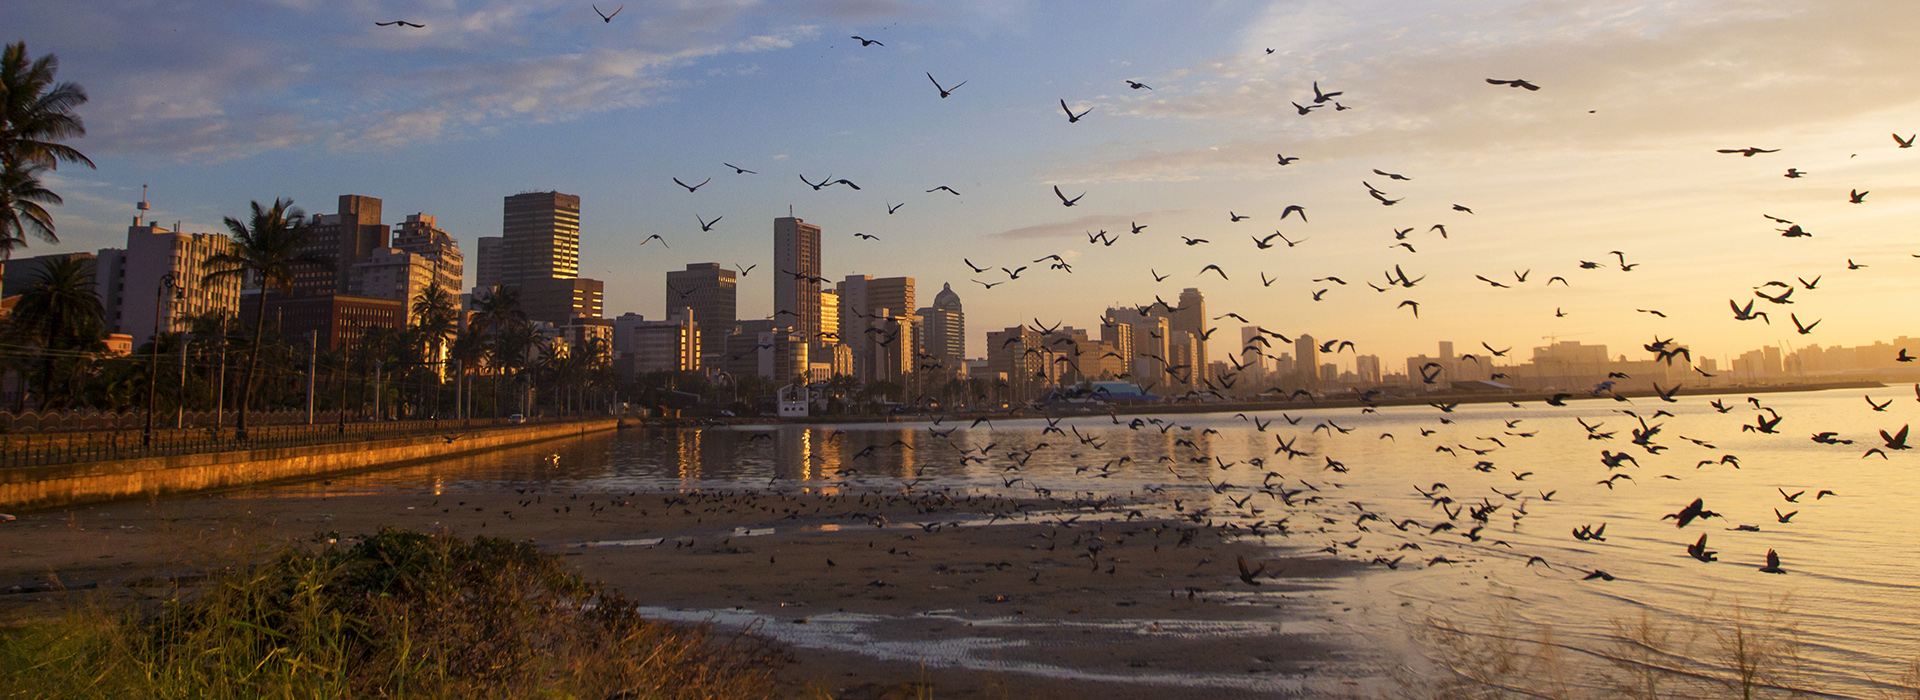 Durban At Sunrise